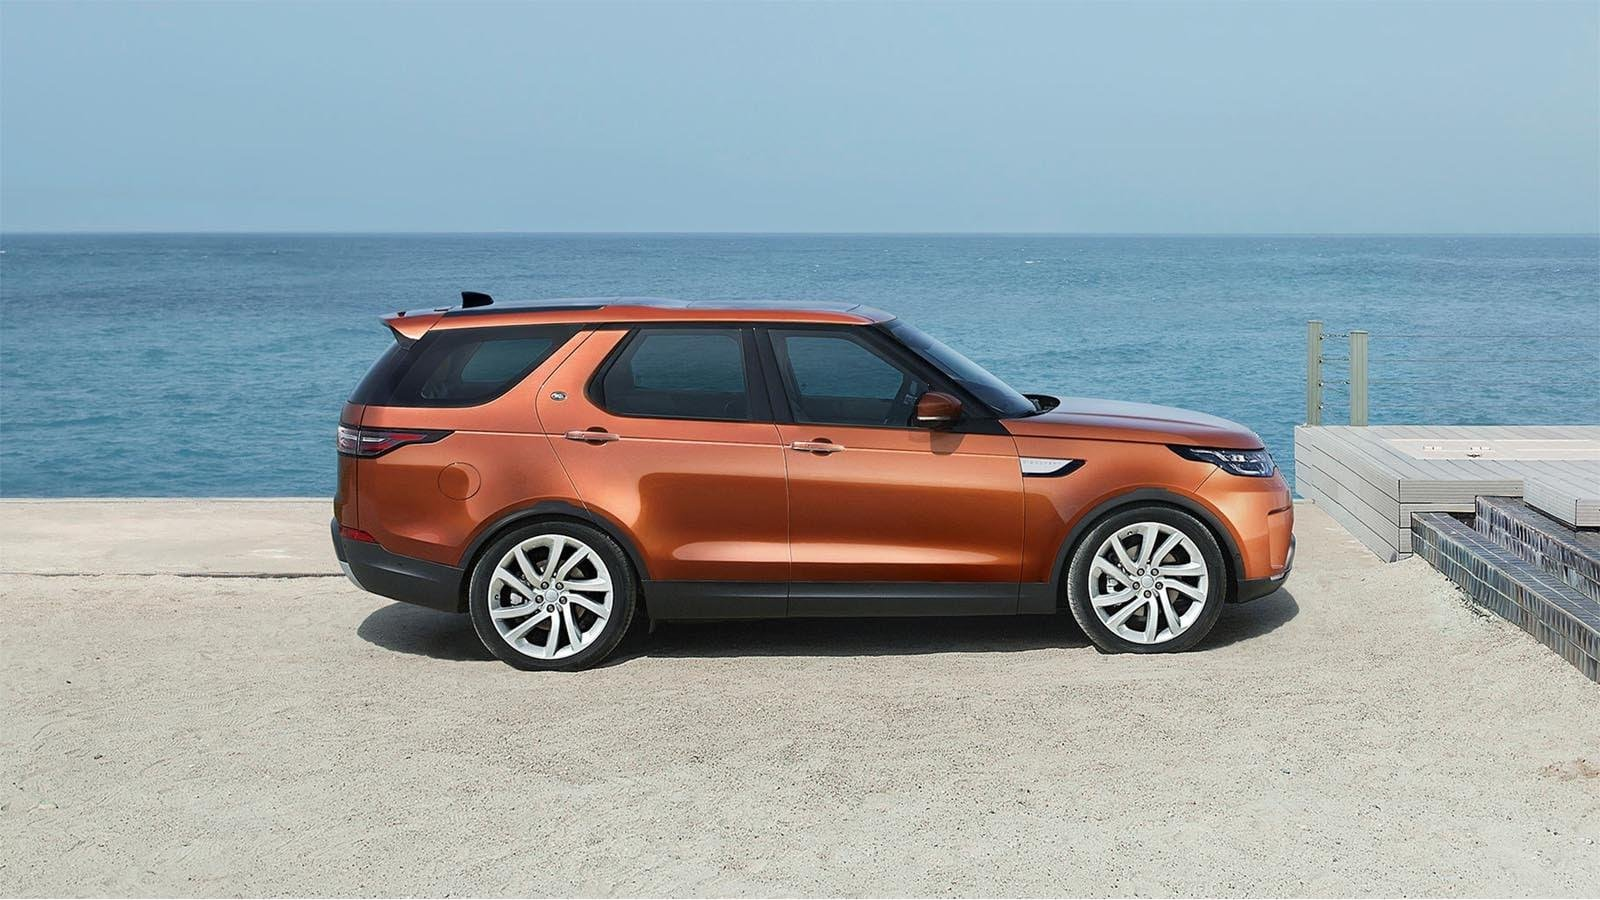 LandRover Discovery...